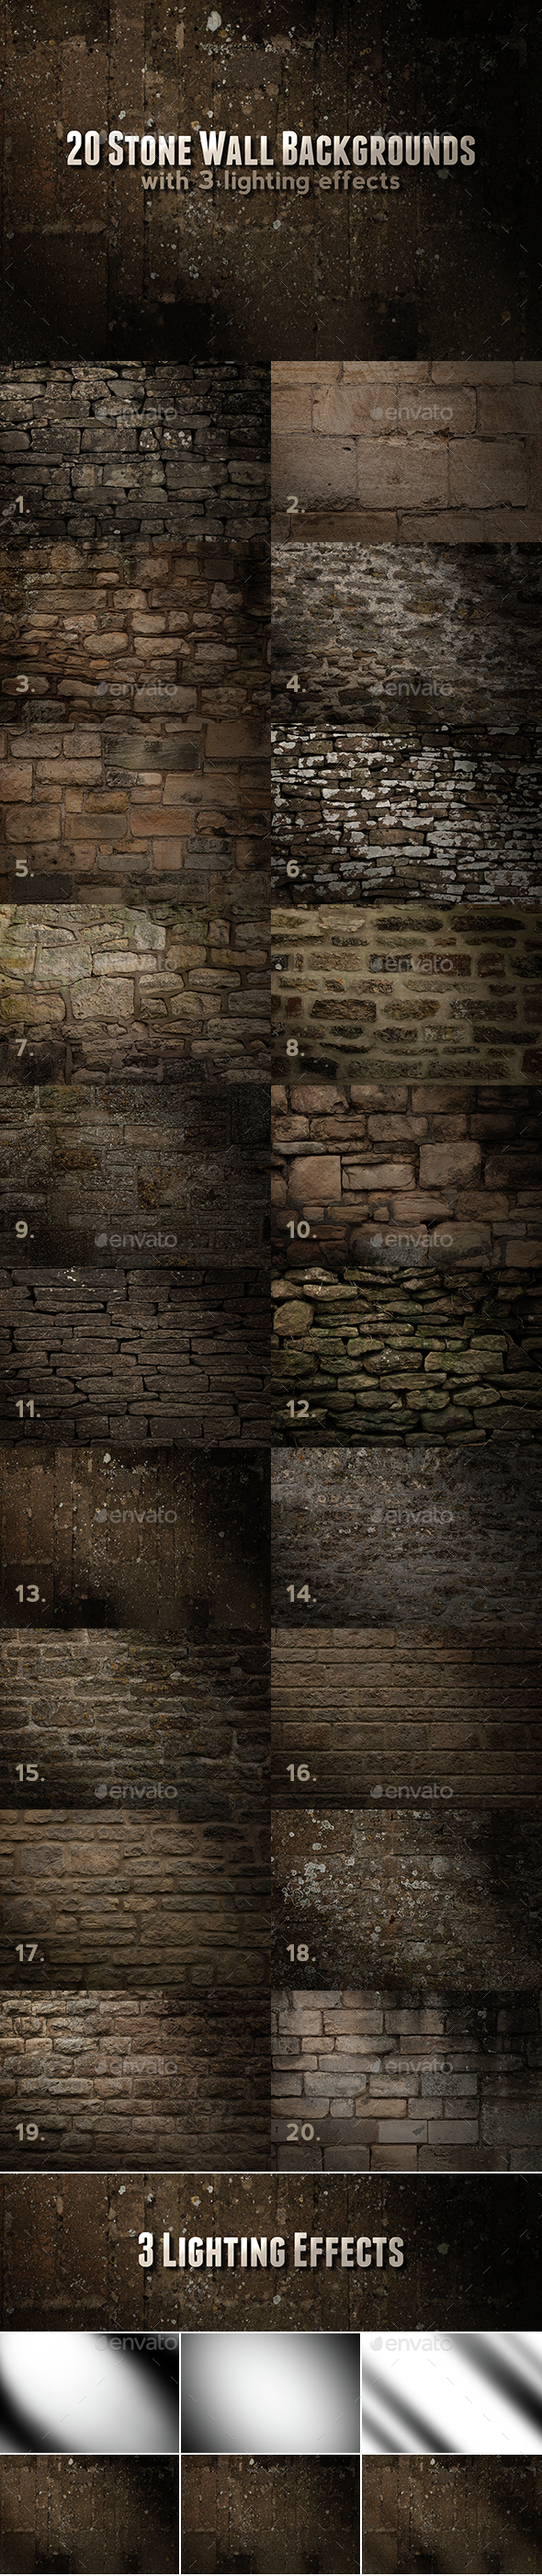 Stone Wall Backgrounds - Stone Textures